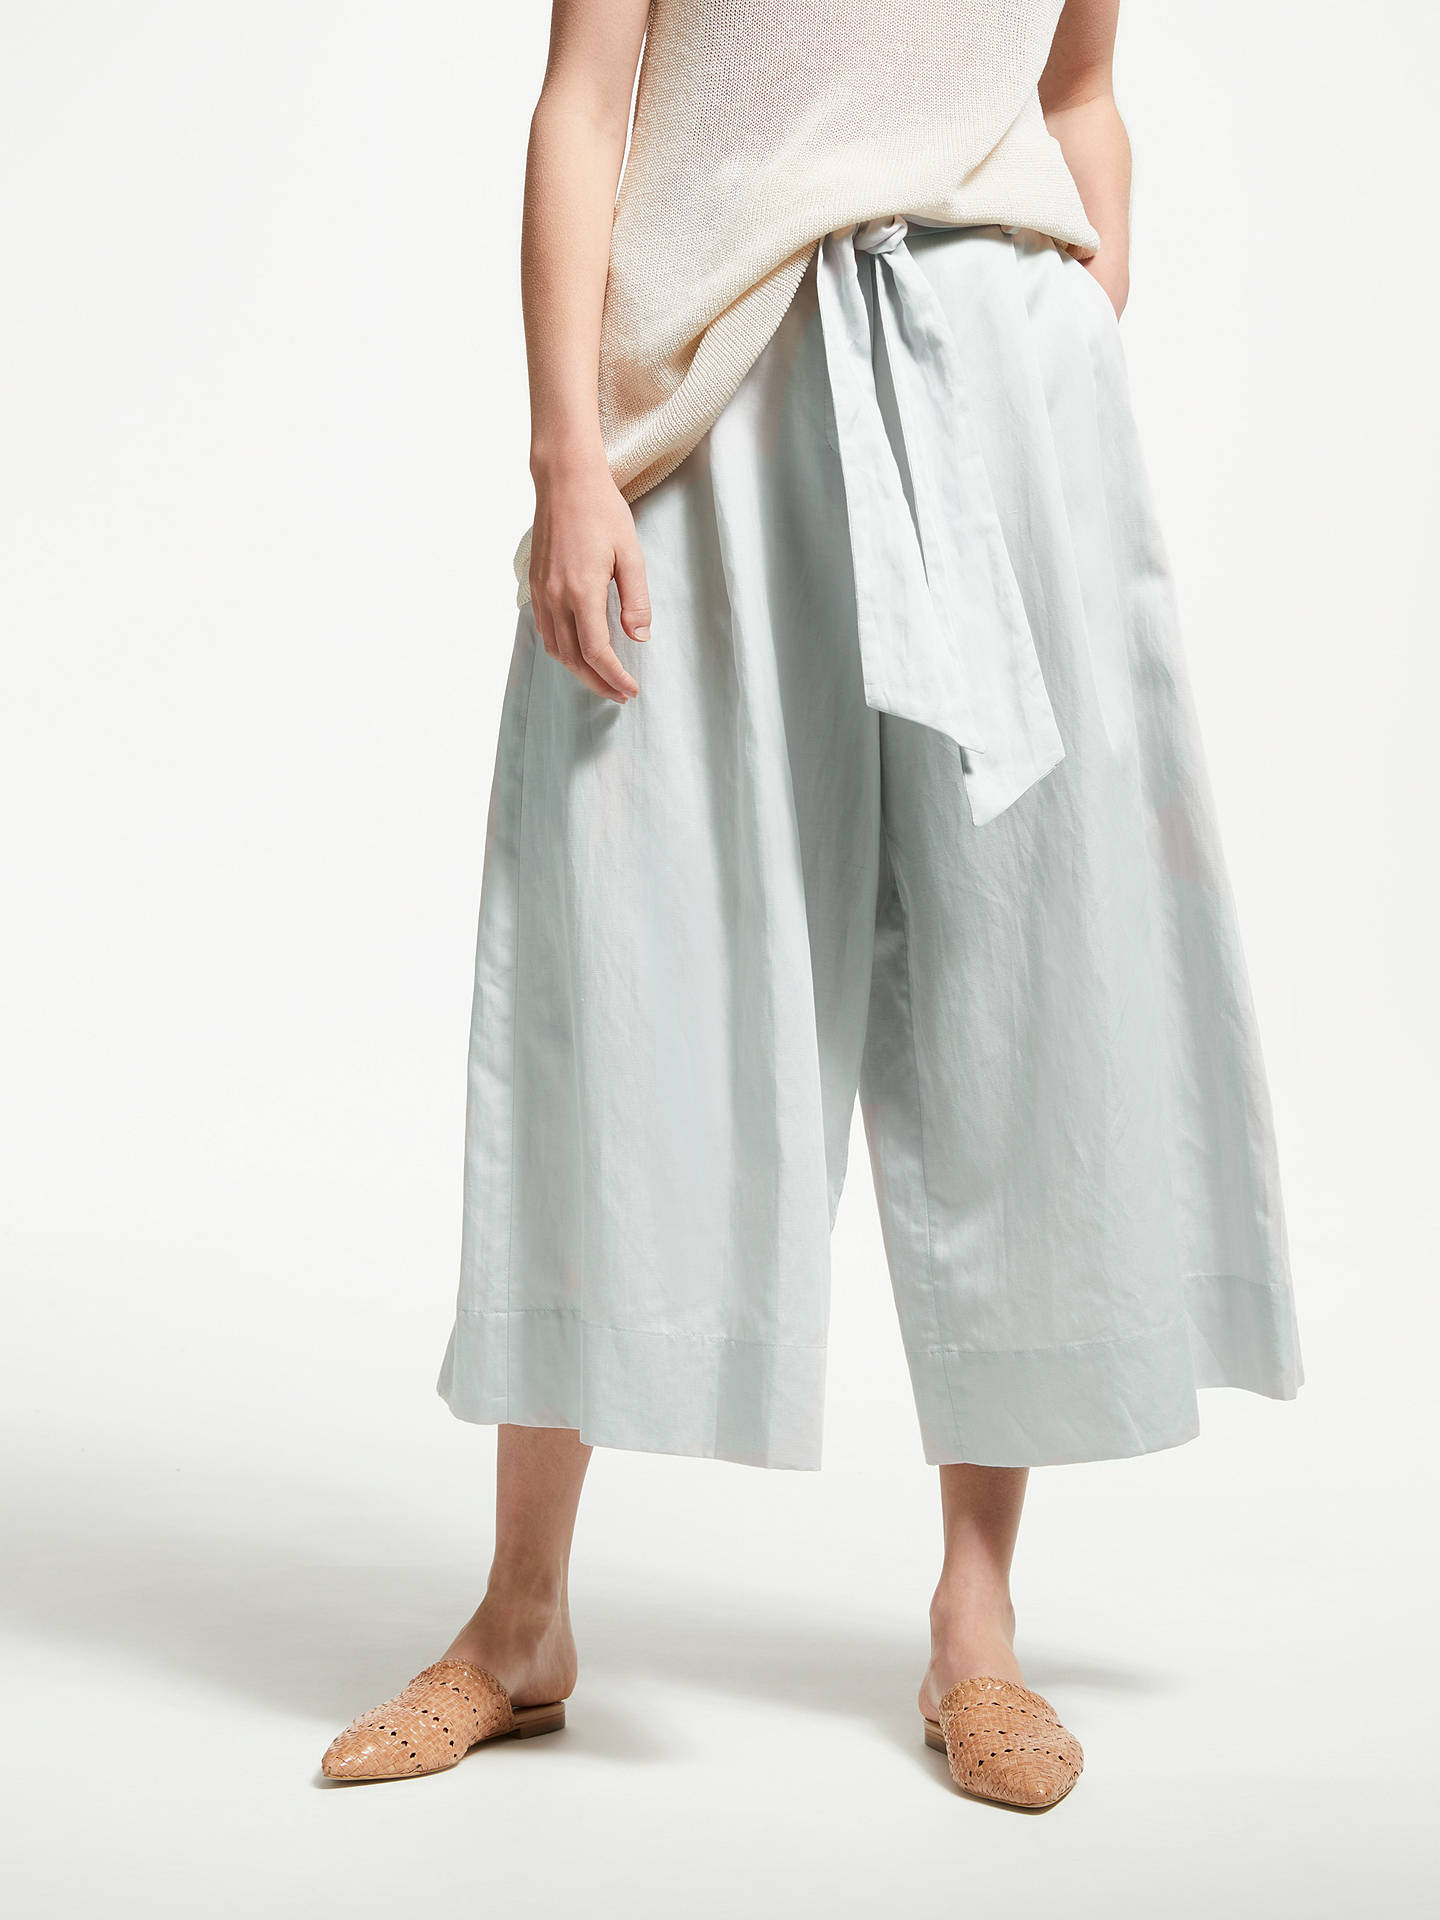 BuyModern Rarity Fluid Culottes, Grey, 8 Online at johnlewis.com